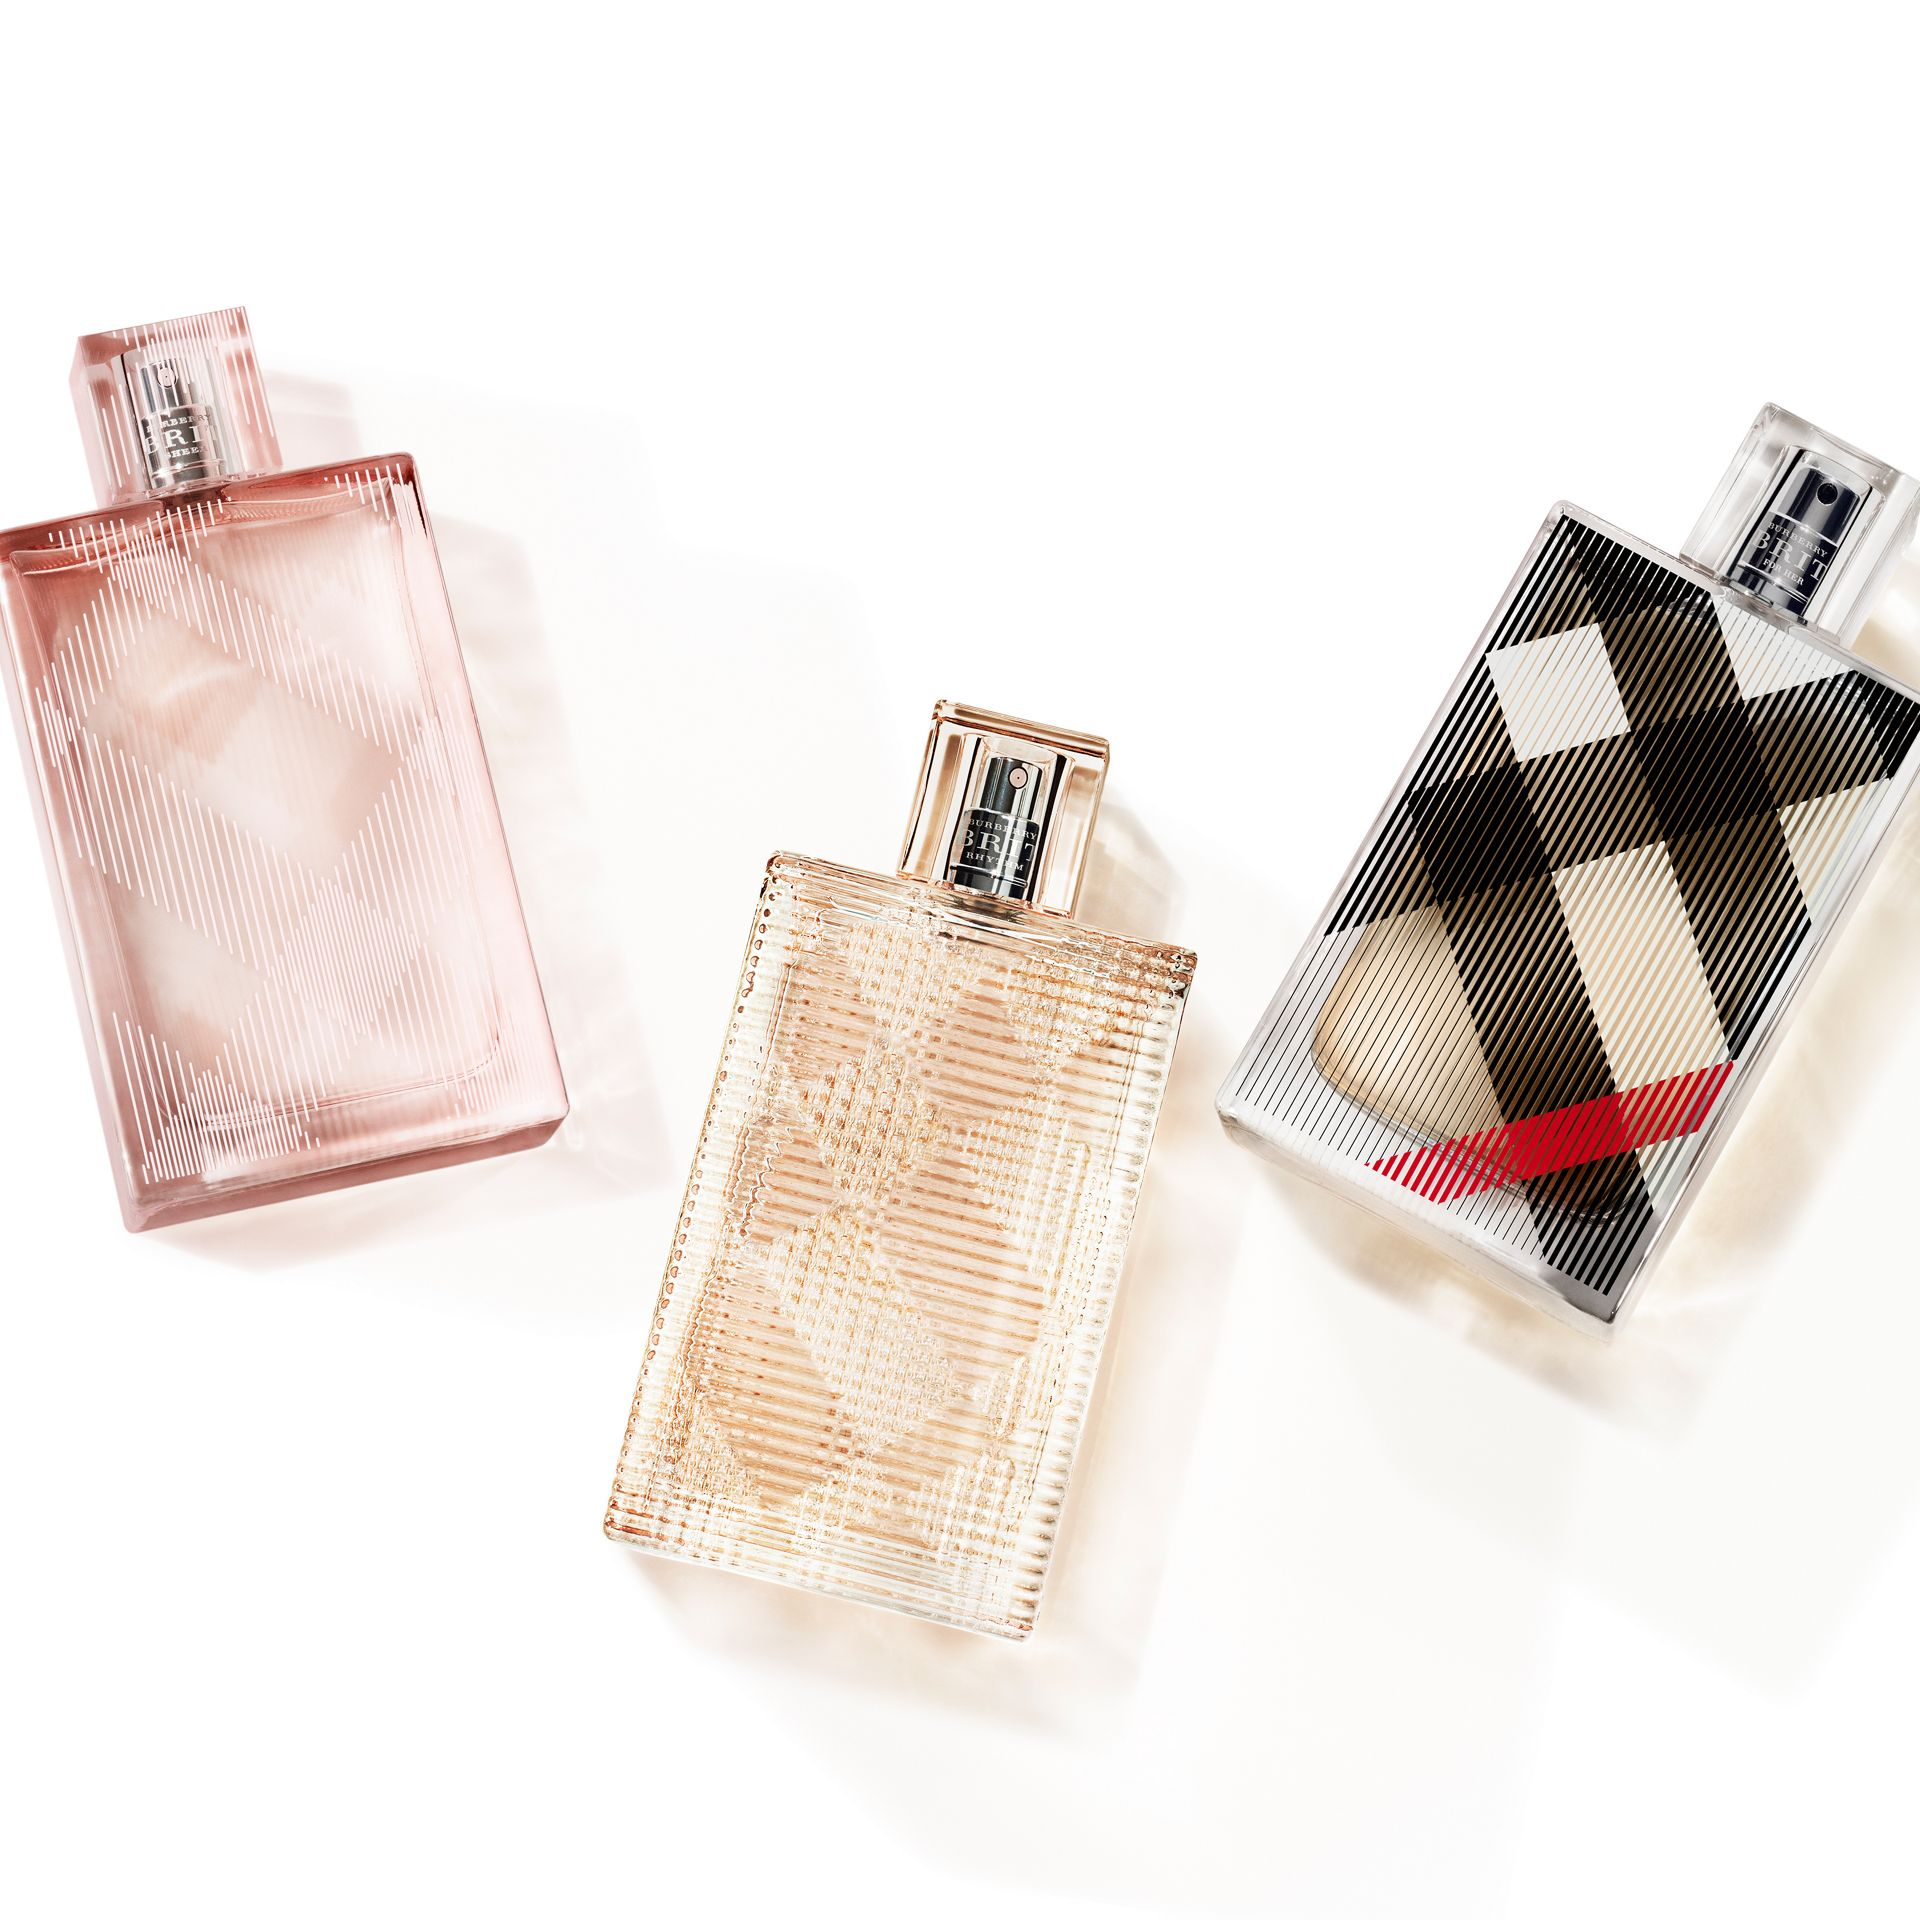 Burberry Brit For Her Eau de Parfum 50ml - gallery image 4